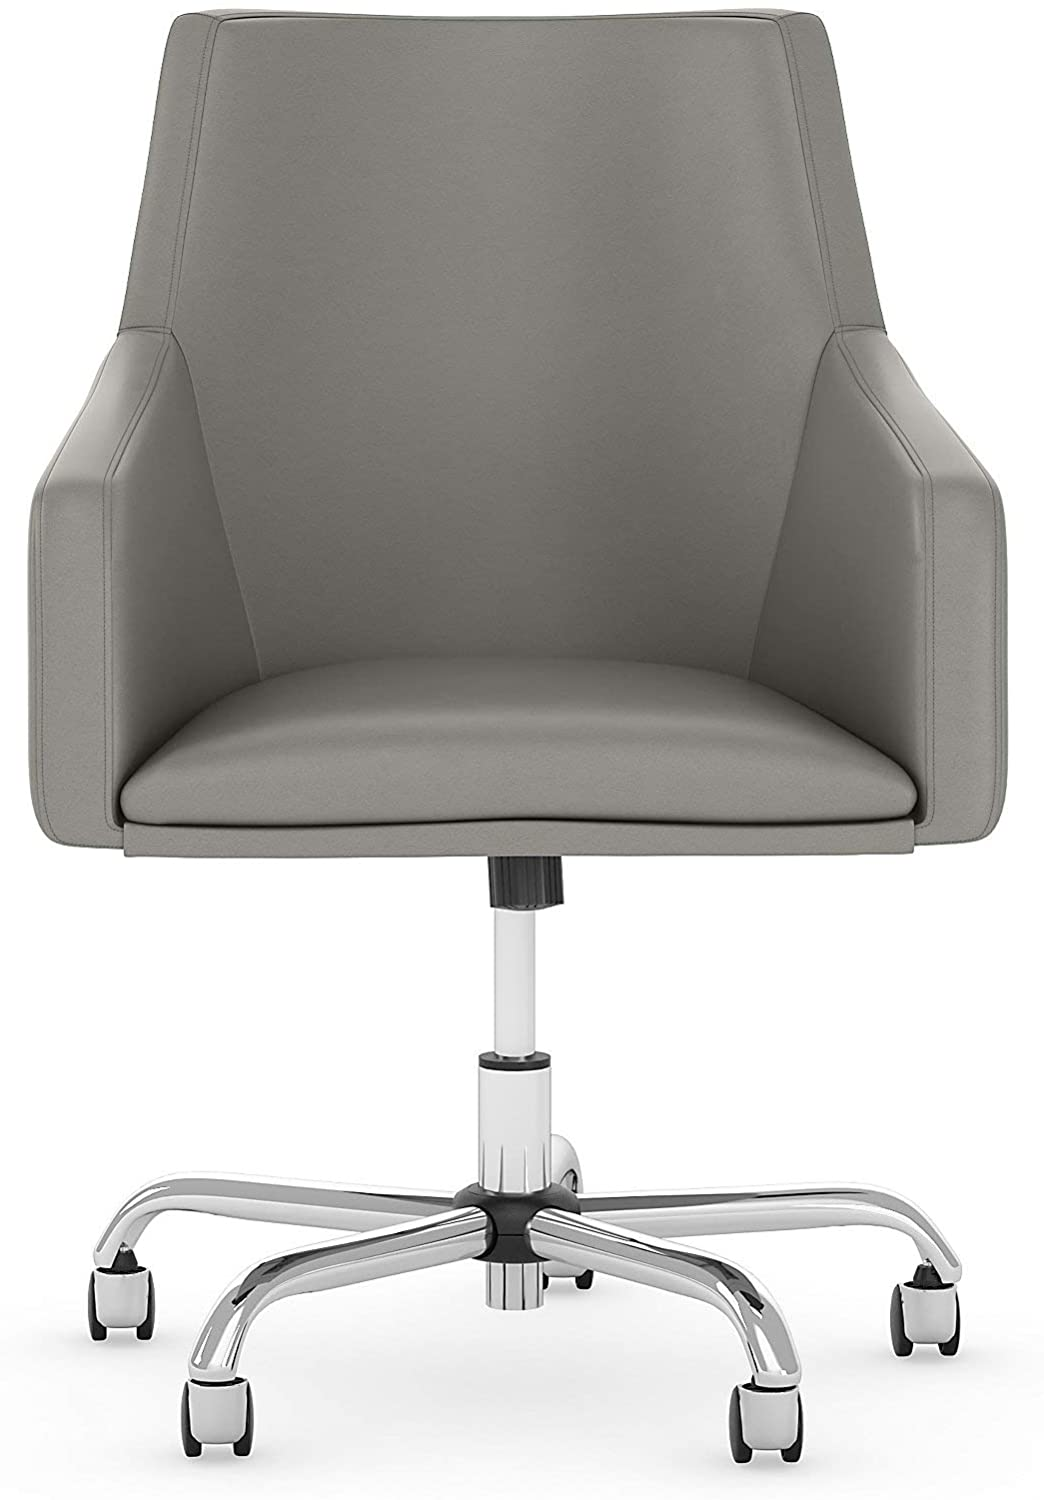 Bush Furniture Cabot Mid Back Leather Box Chair in Light Gray